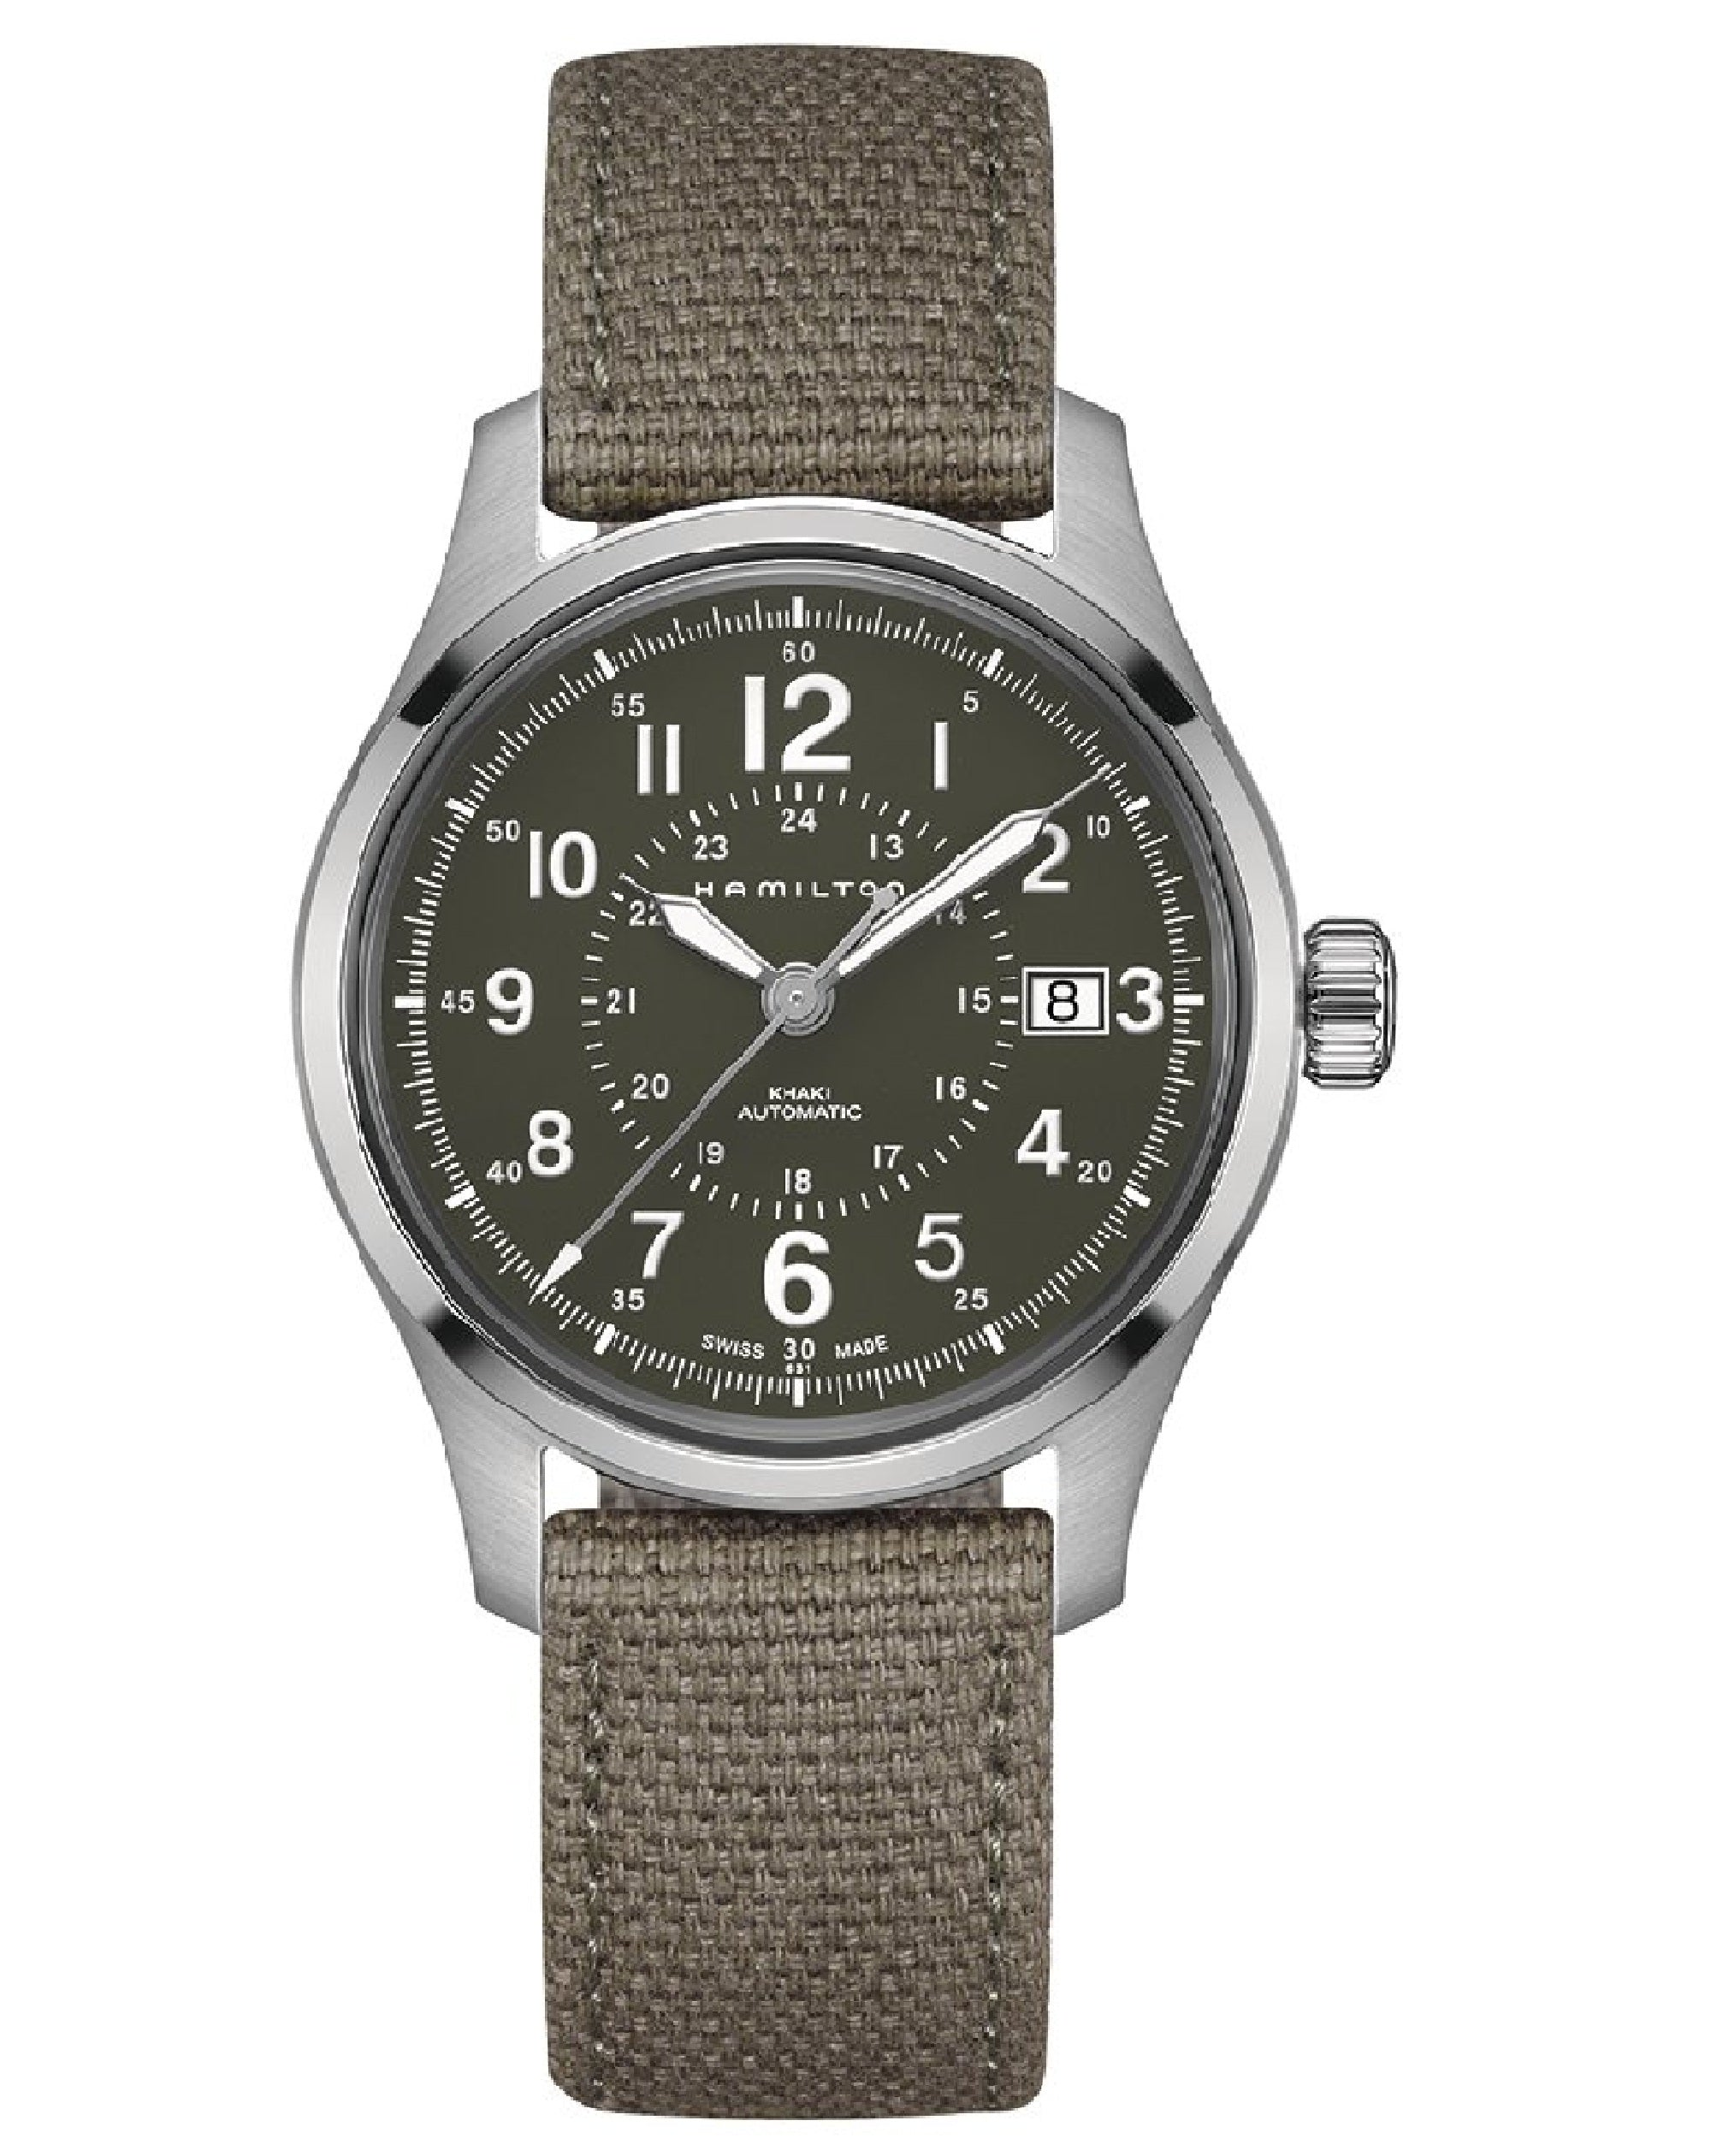 Khaki Field Auto Watch, H70595963